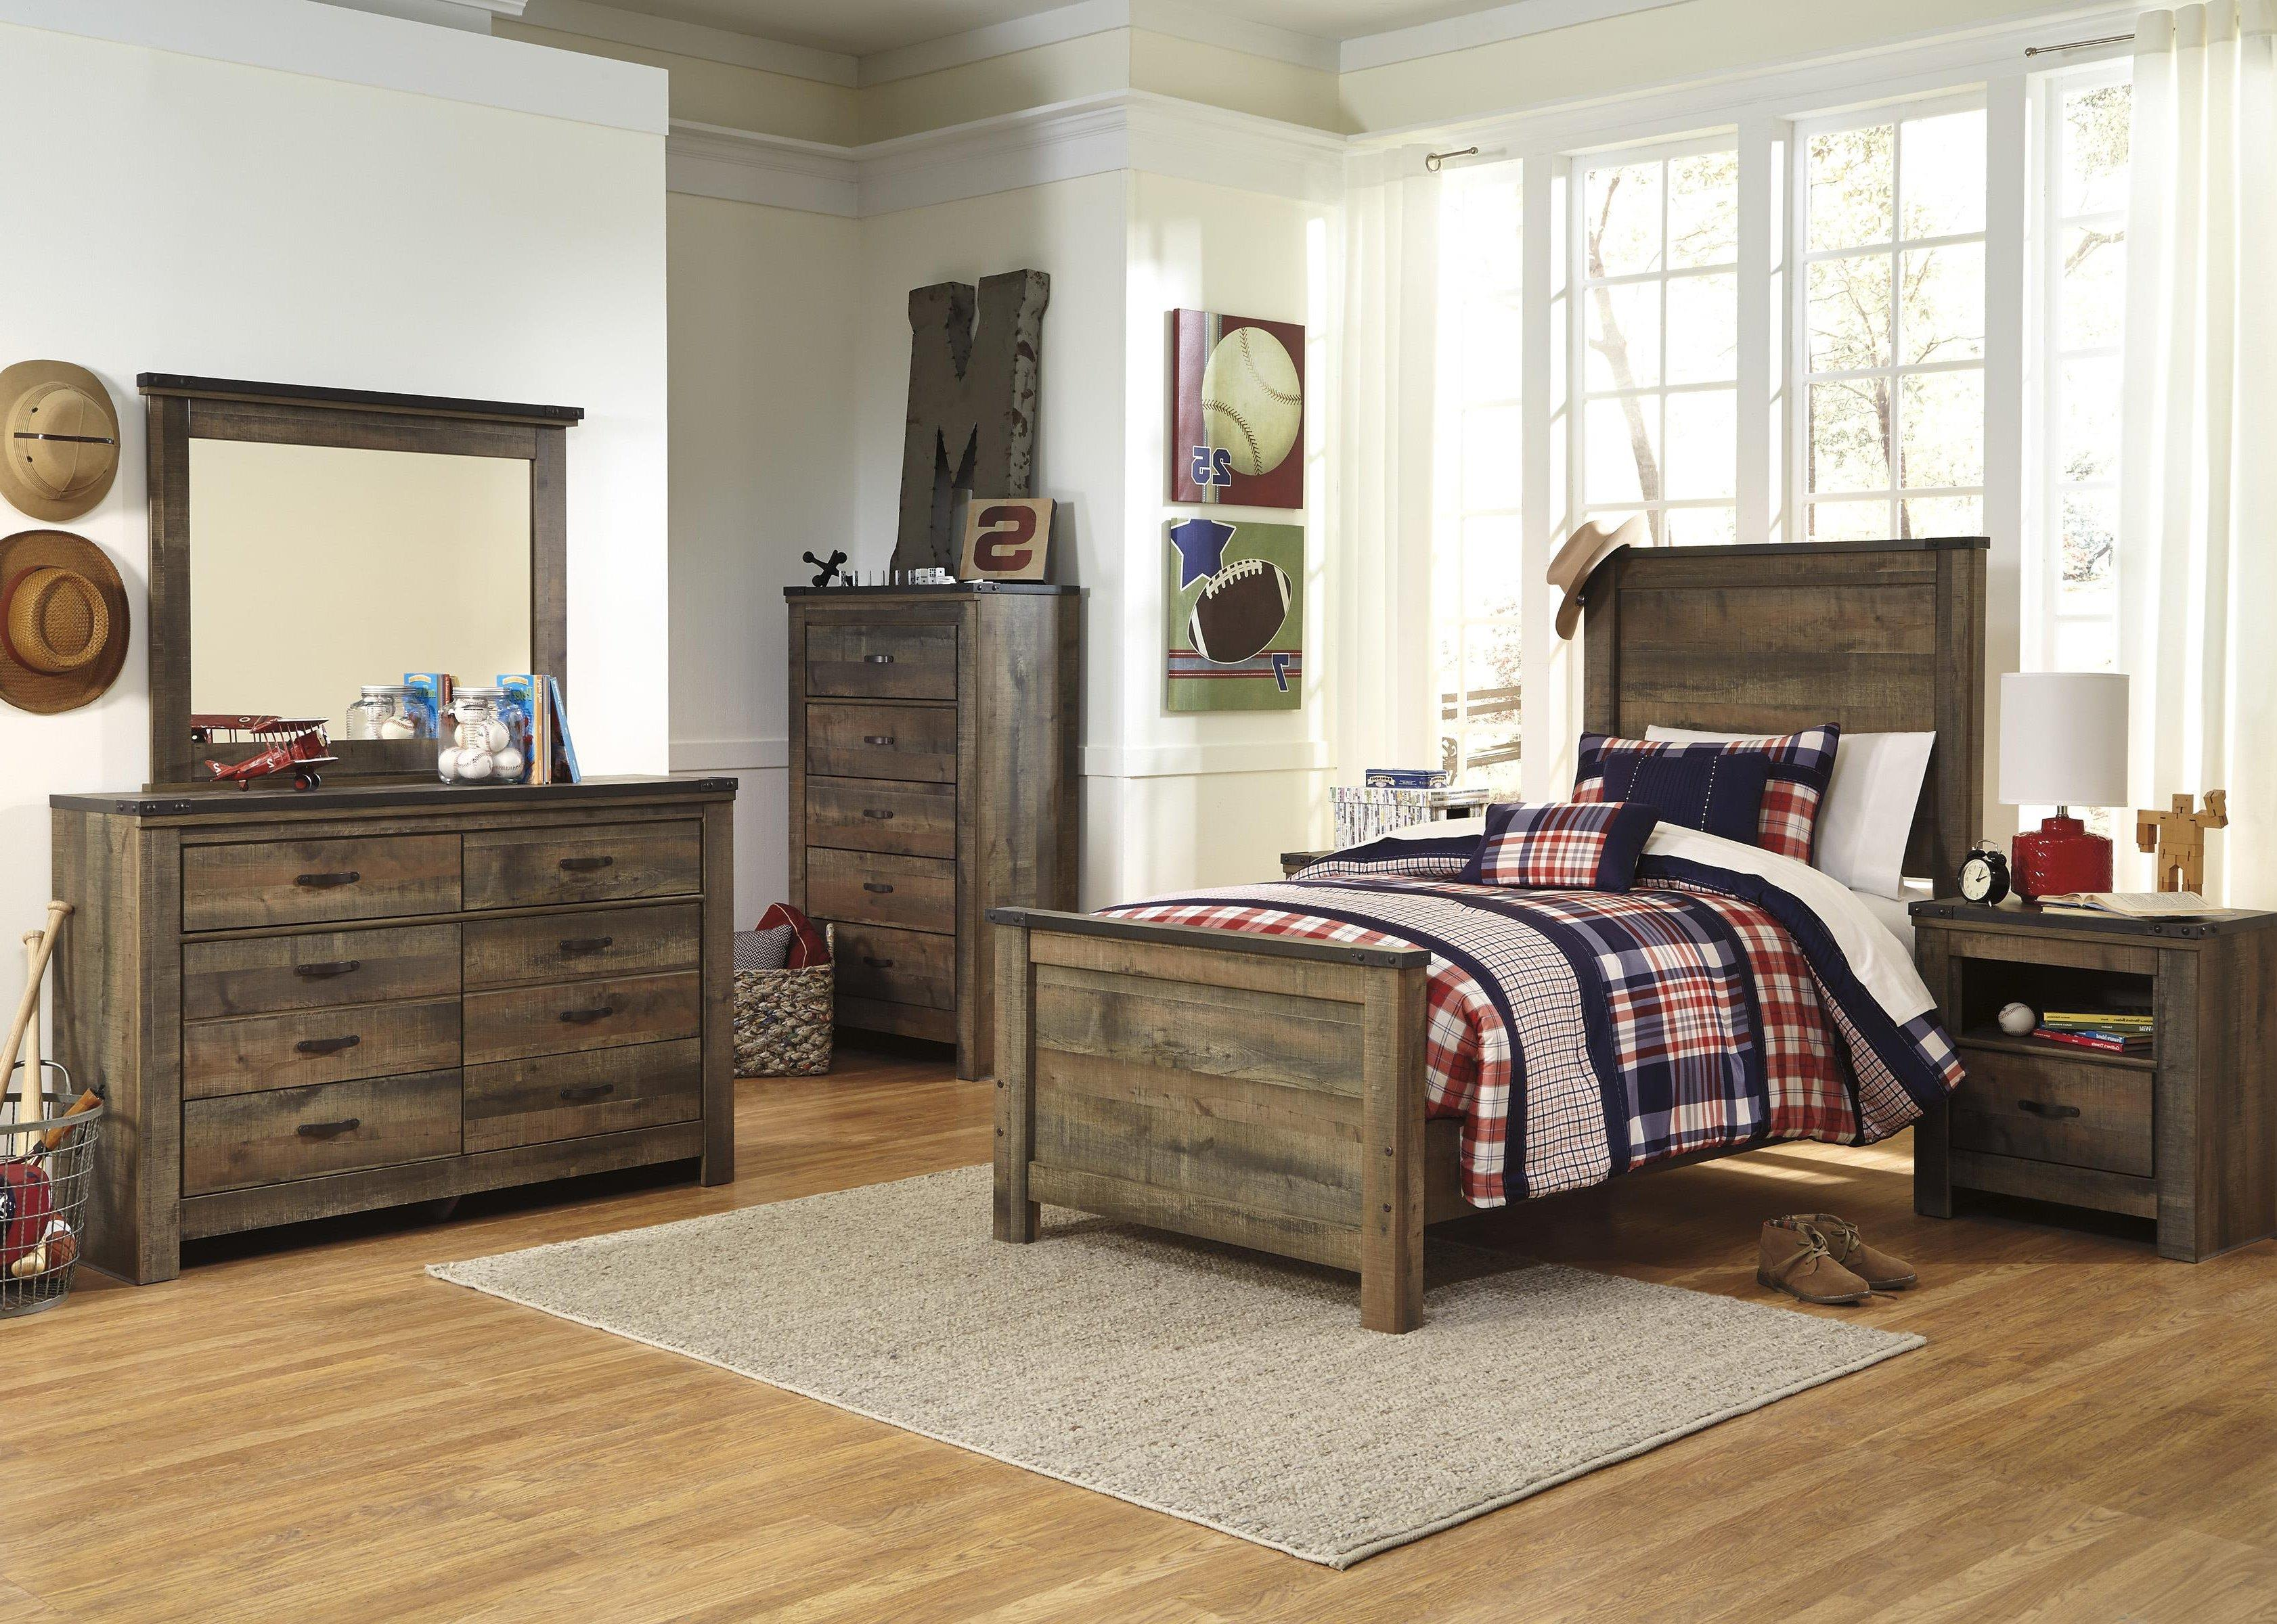 Twin Bed, Dresser, Mirror and Nightstand